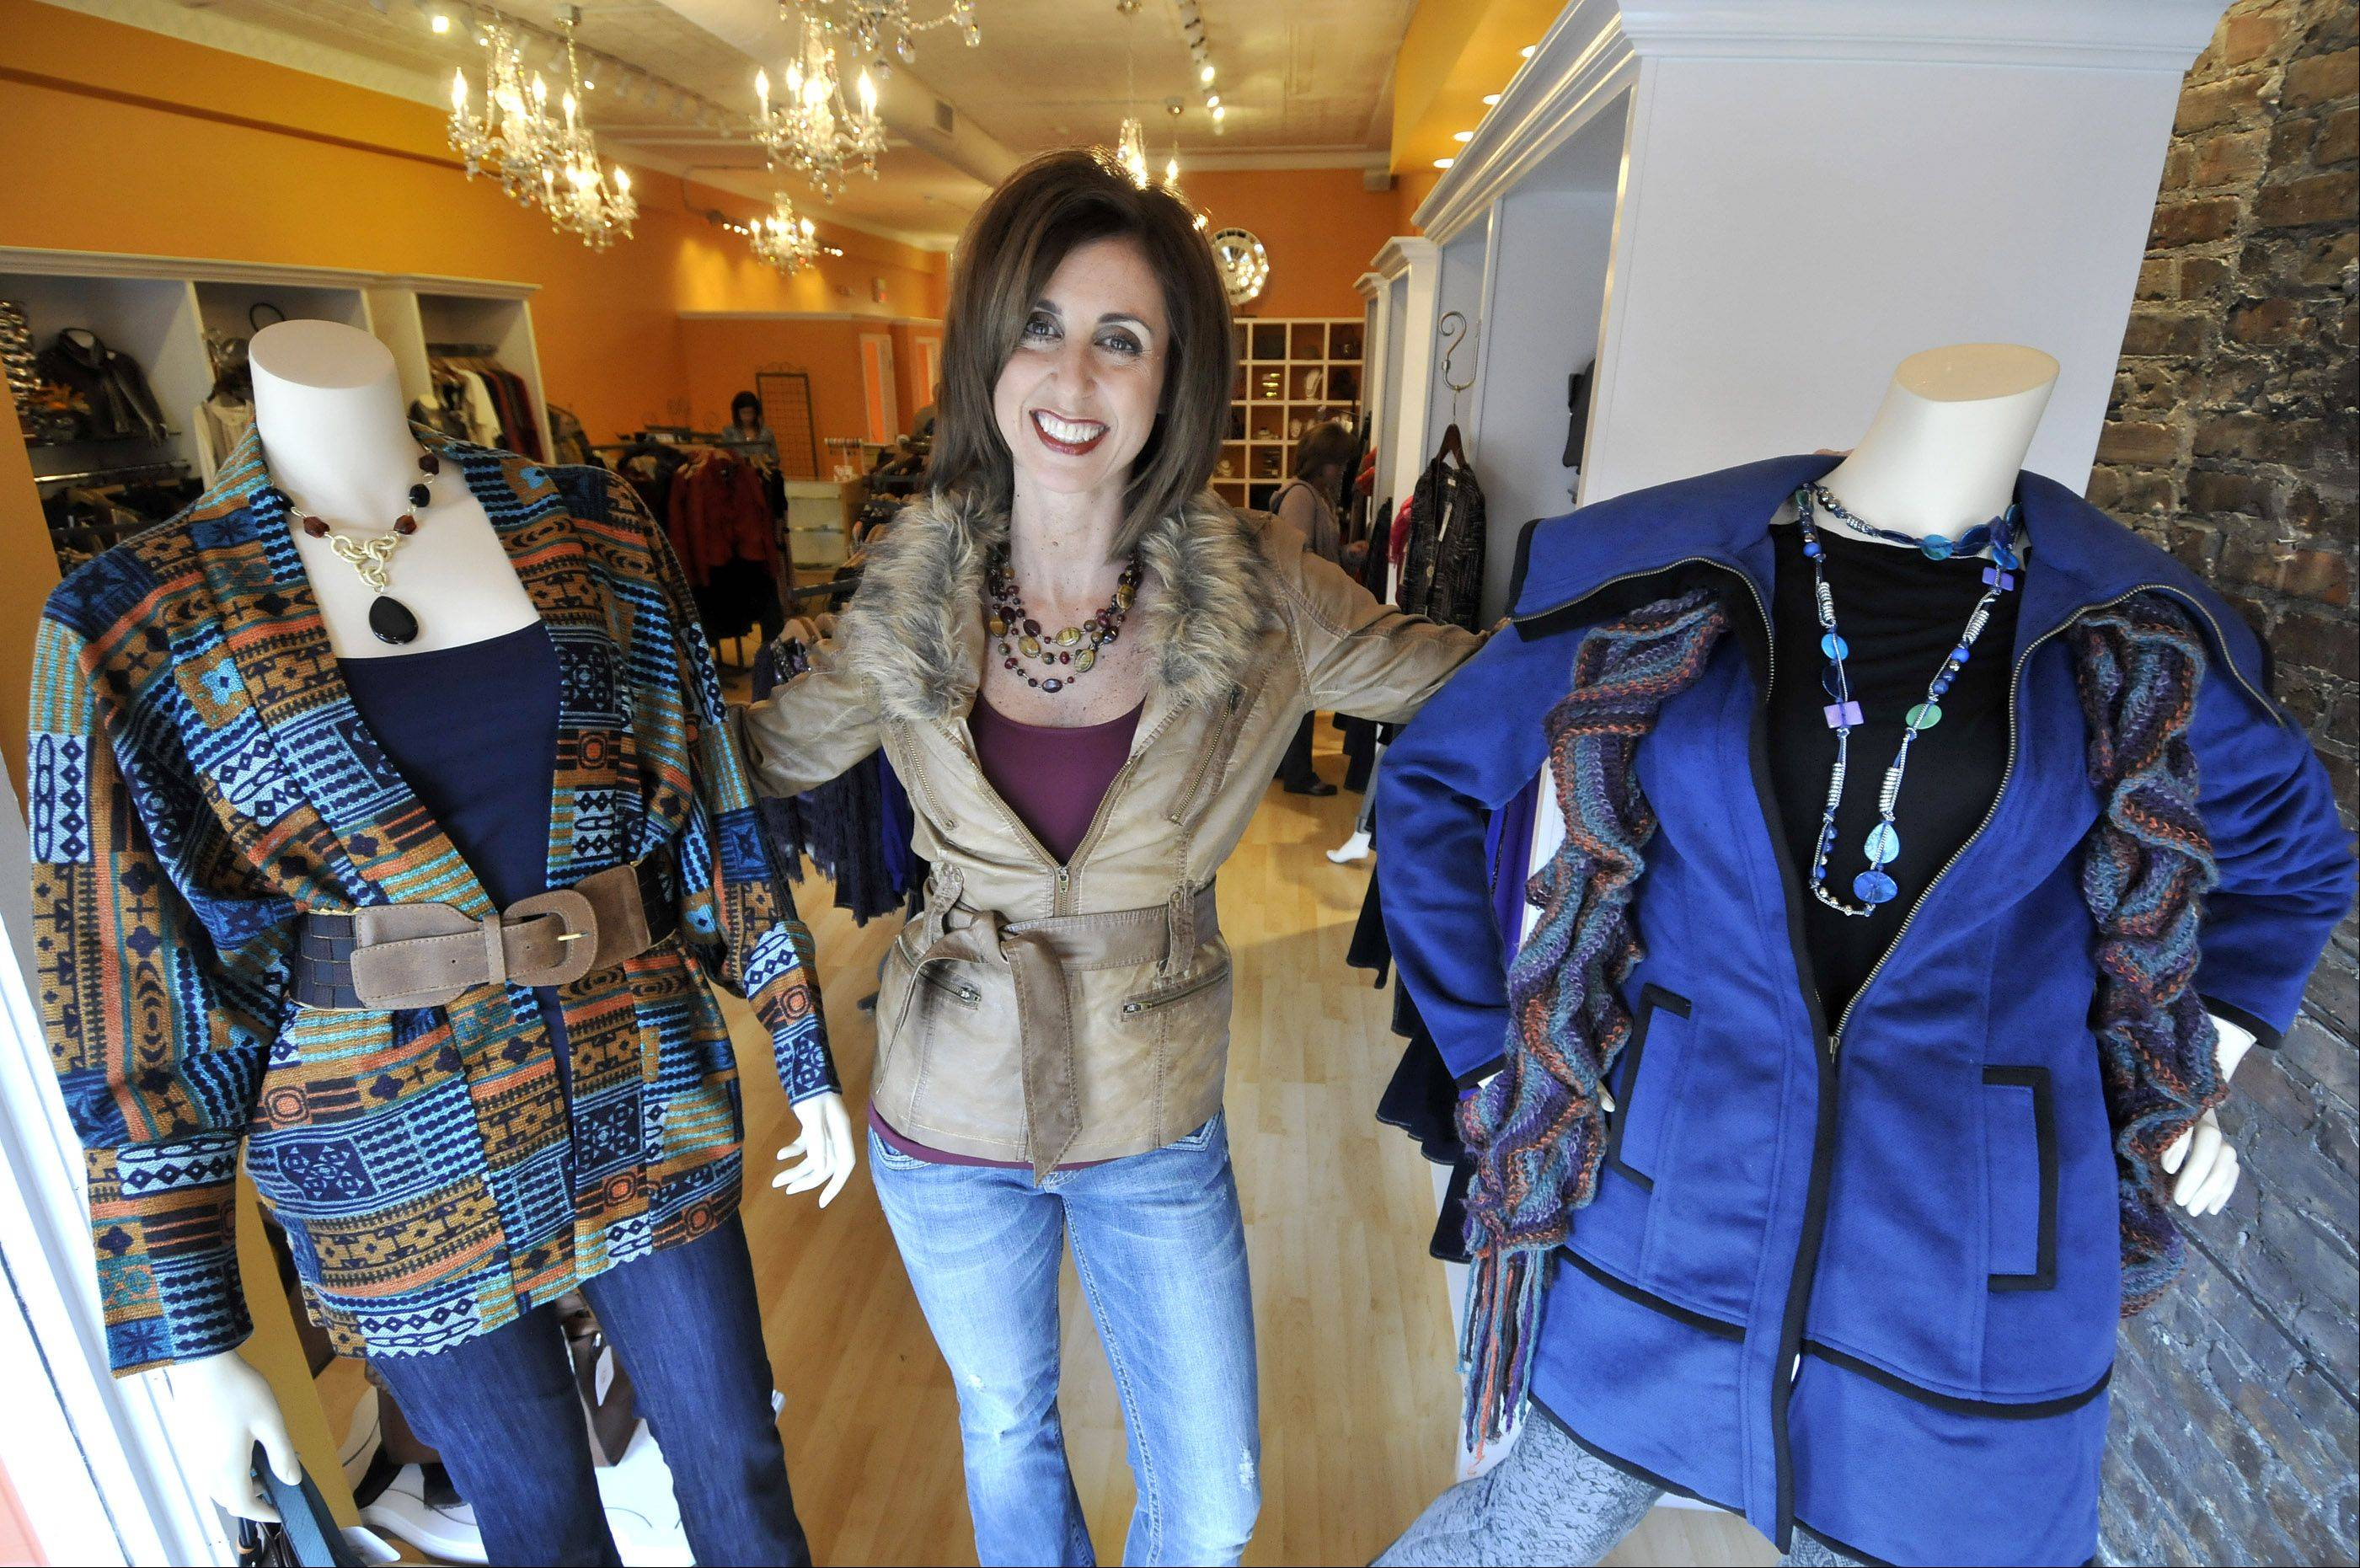 Jill Card, owner of Jeans and a Cute Top shop in Downers Grove is shown with some of her store's items. The outfit at left is a colorful jacket by Grazia with jeans by Mavi. On the right is a cobalt blue jacket with black piping by Tulle and python print pants by Mavi.